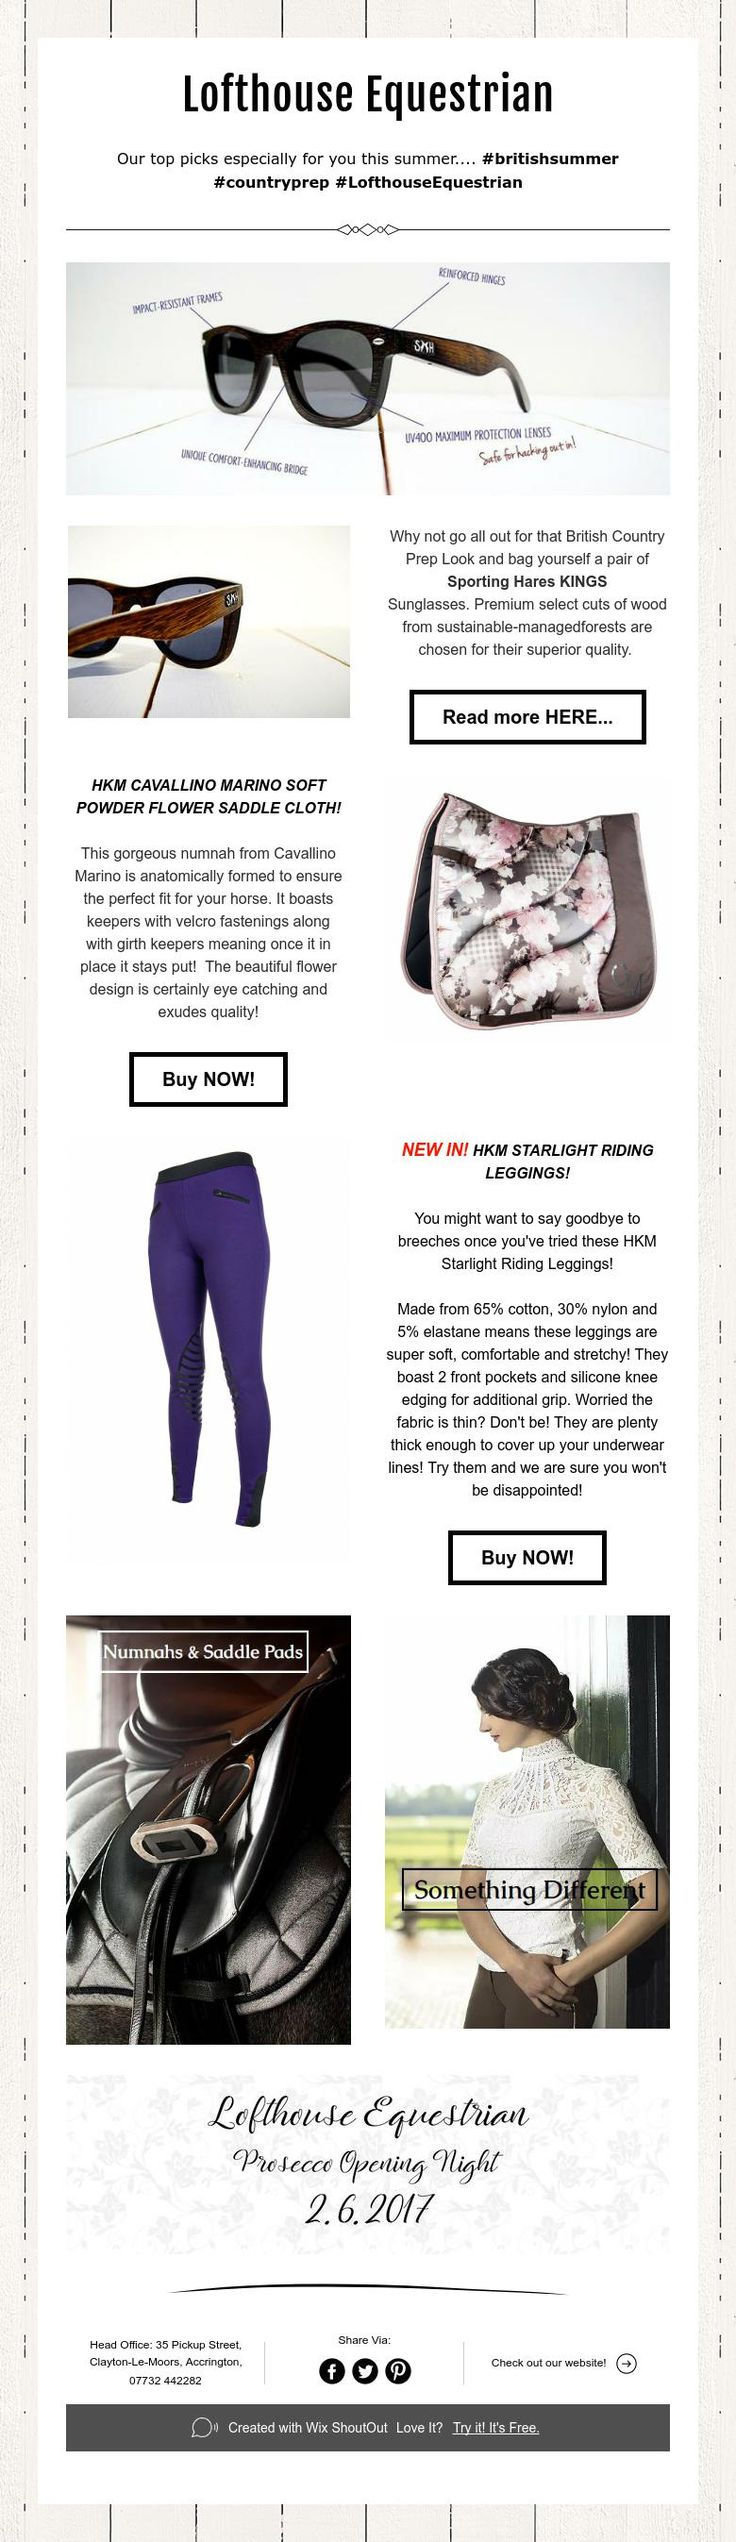 Our tops picks especially for you this summer.... #LofthouseEquestrian